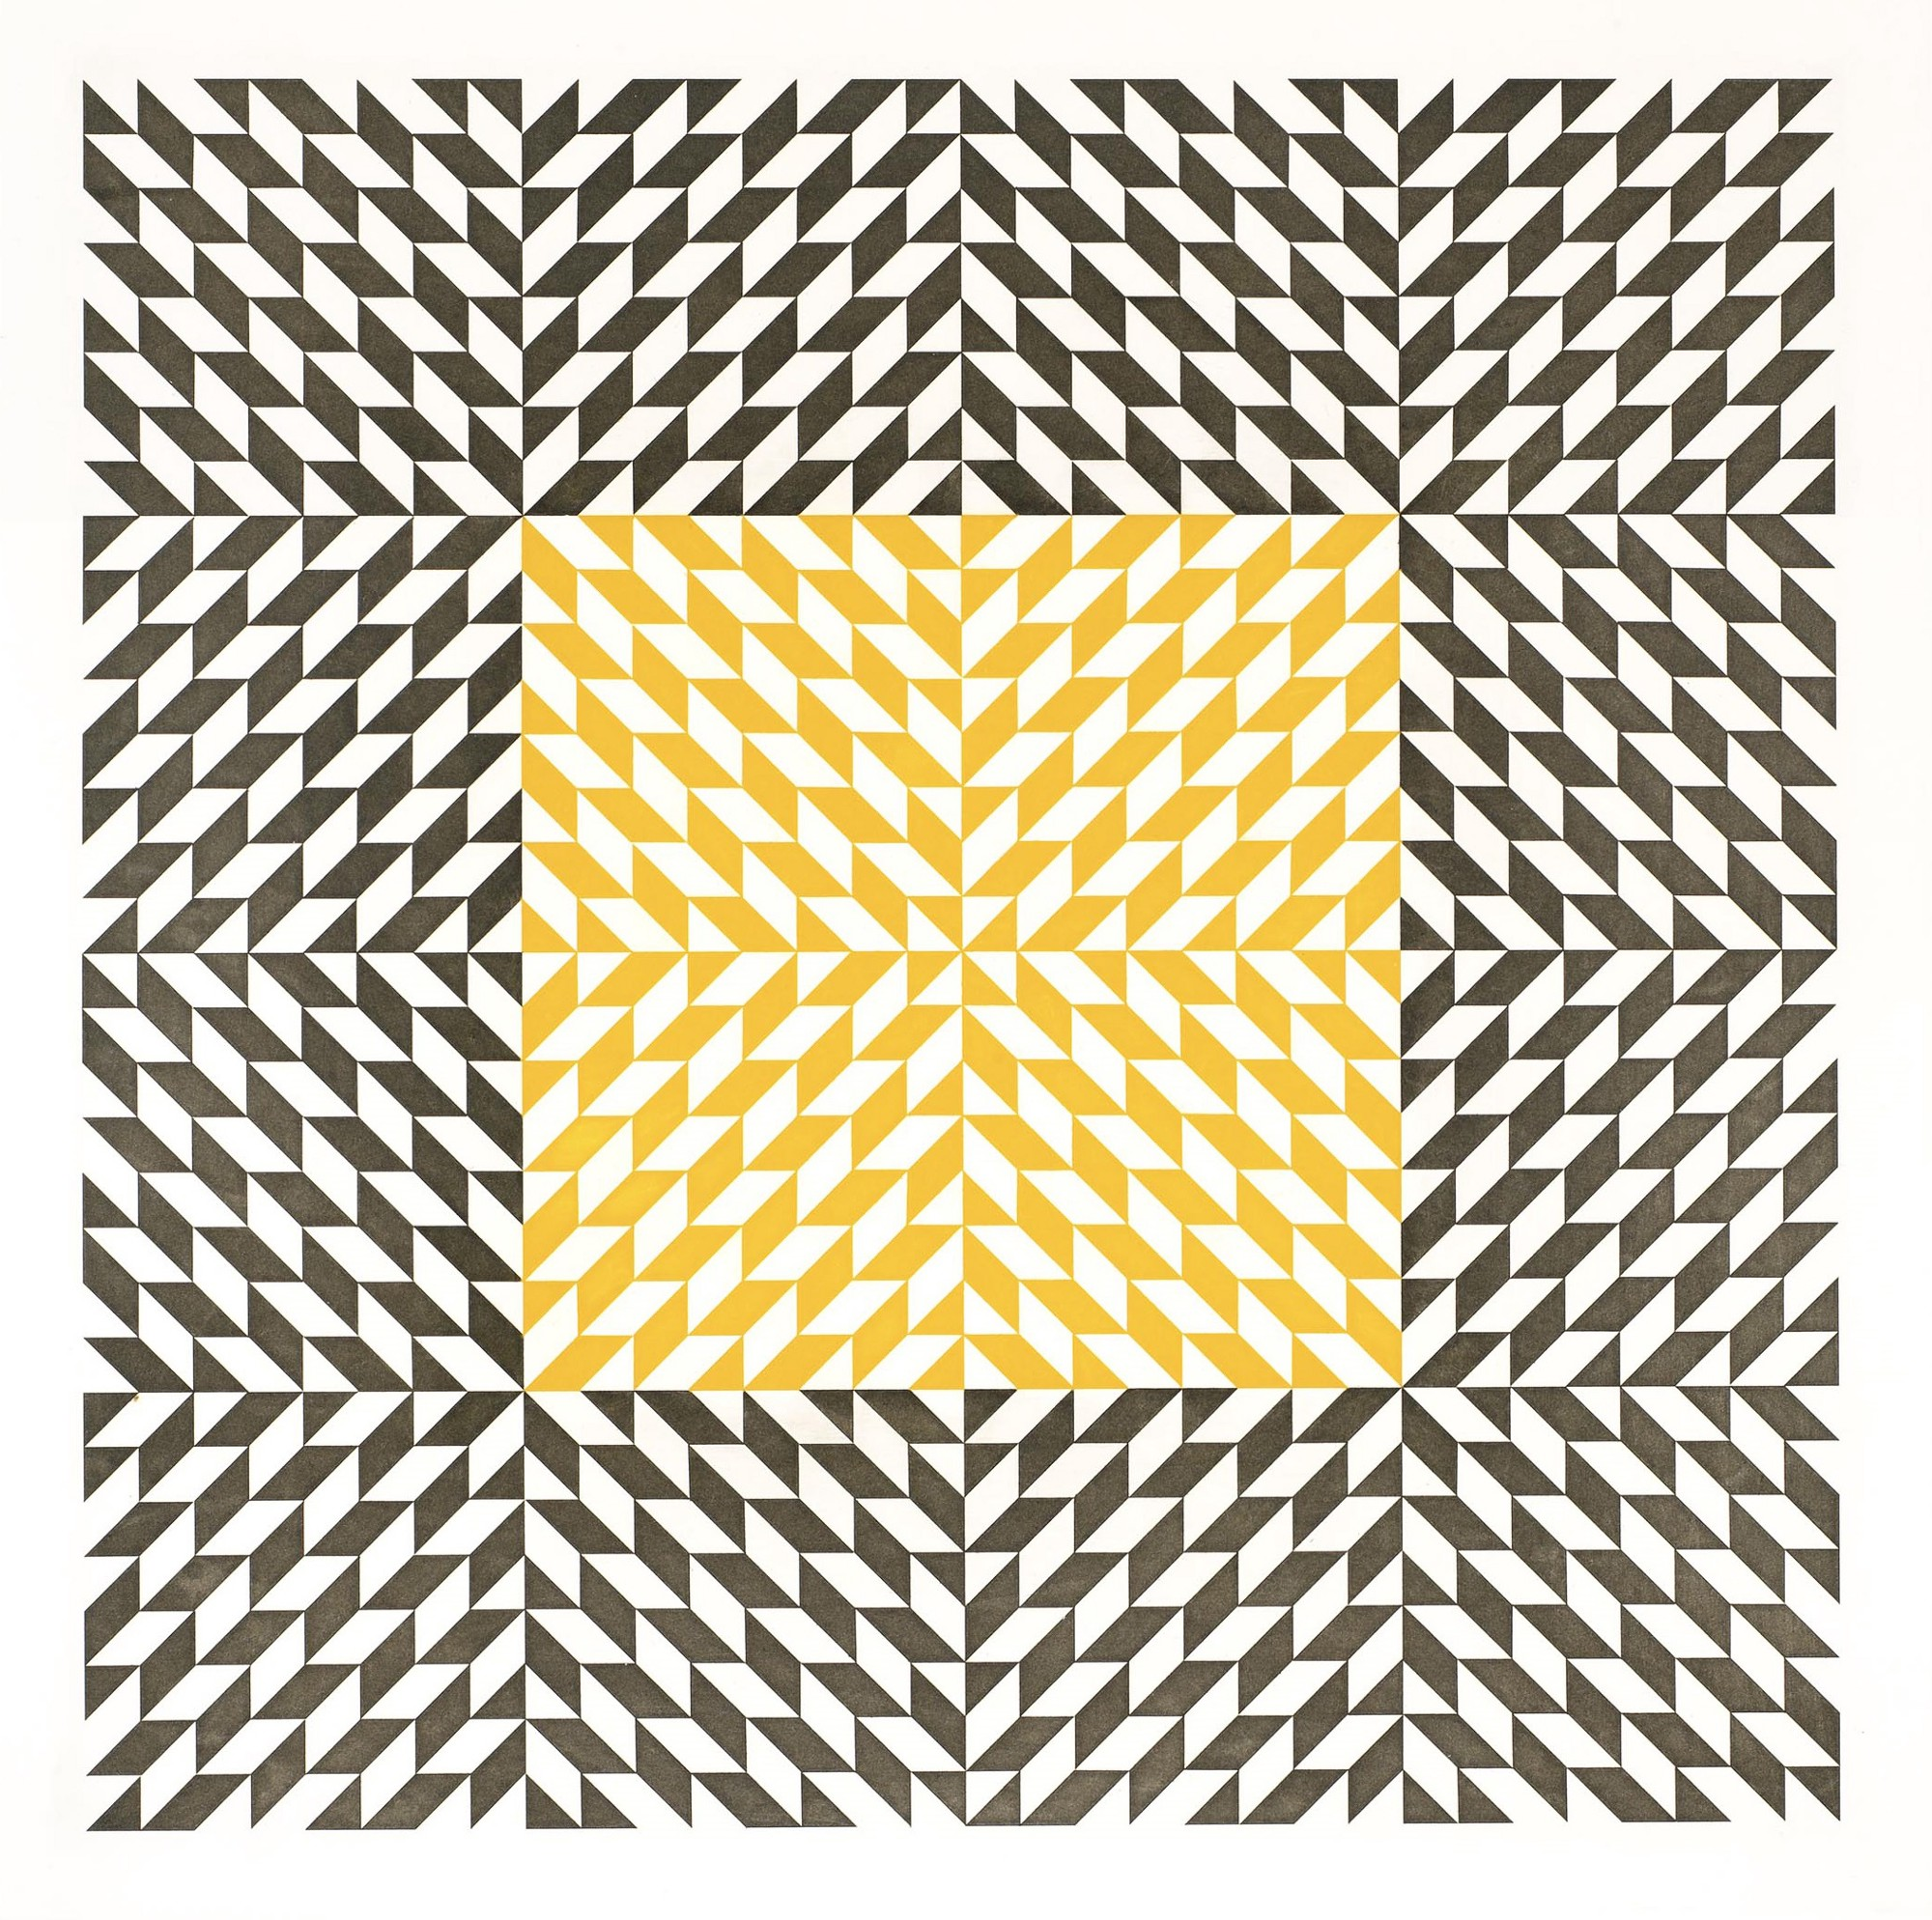 Transparent yellow square within a larger patterned square. The patterns have varying directions and create movement illusion